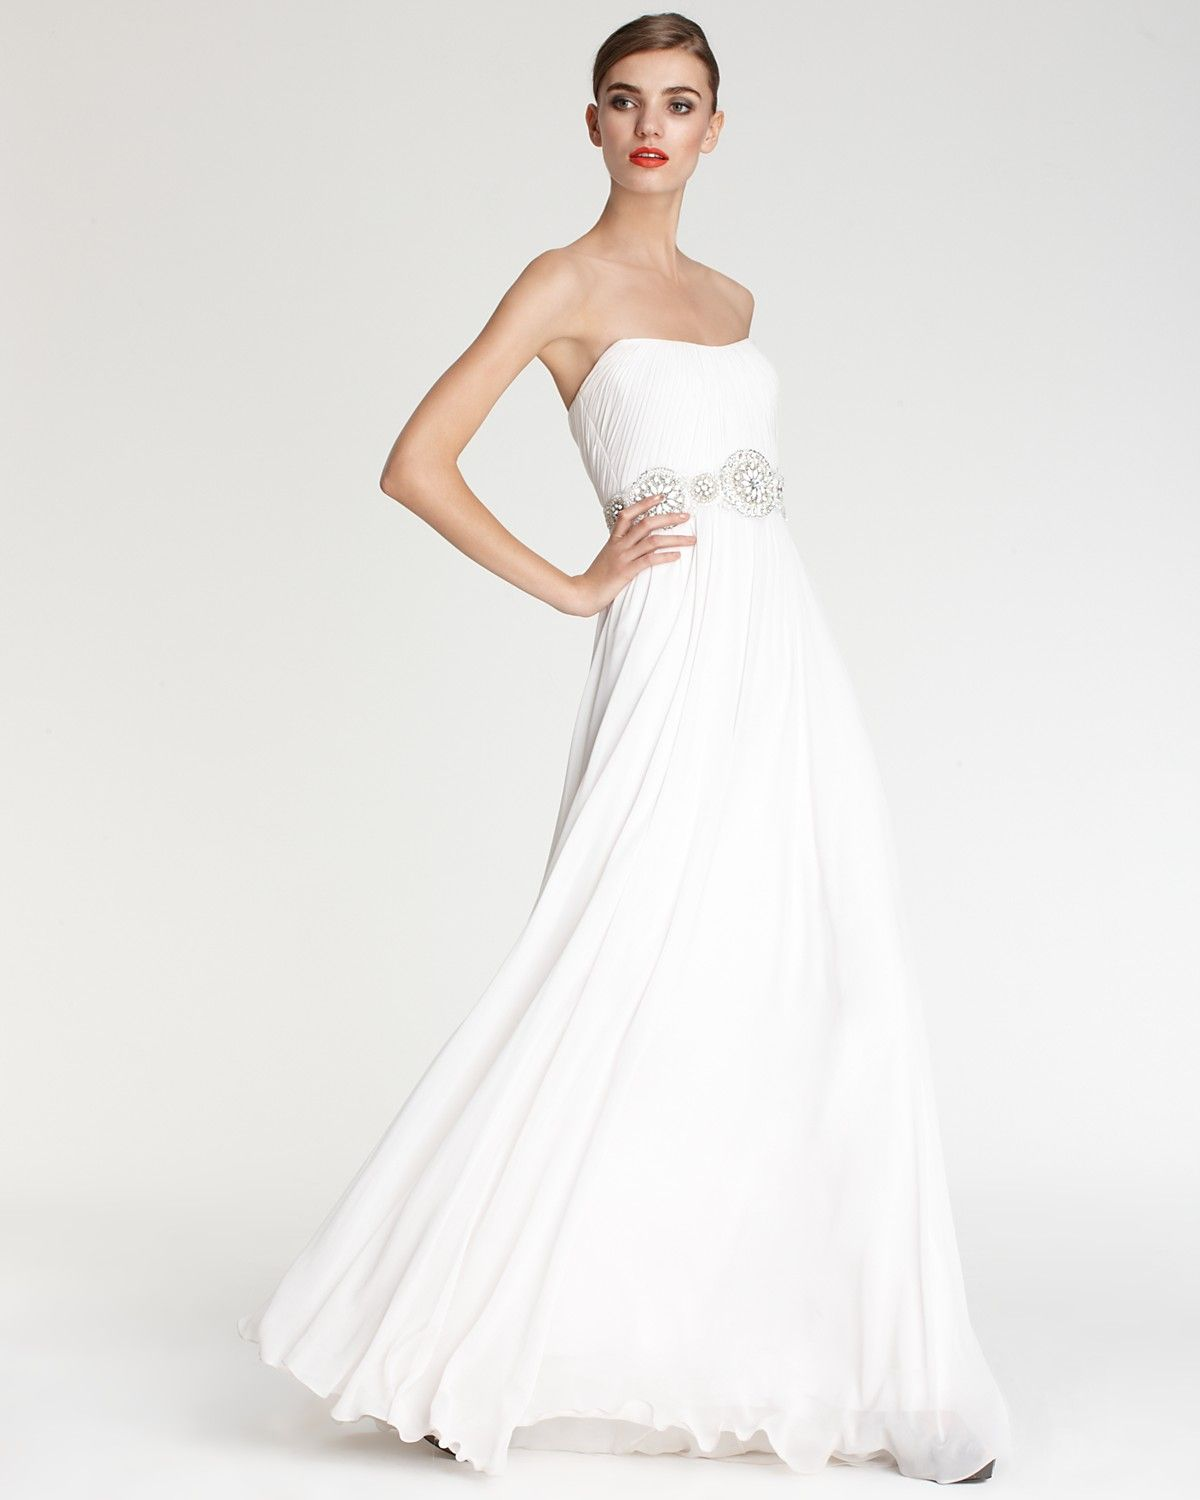 Theia Gown Embellished Waist Strapless Gown Women S Bloomingdale S Bloomingdale Dresses Strapless Gown Gowns